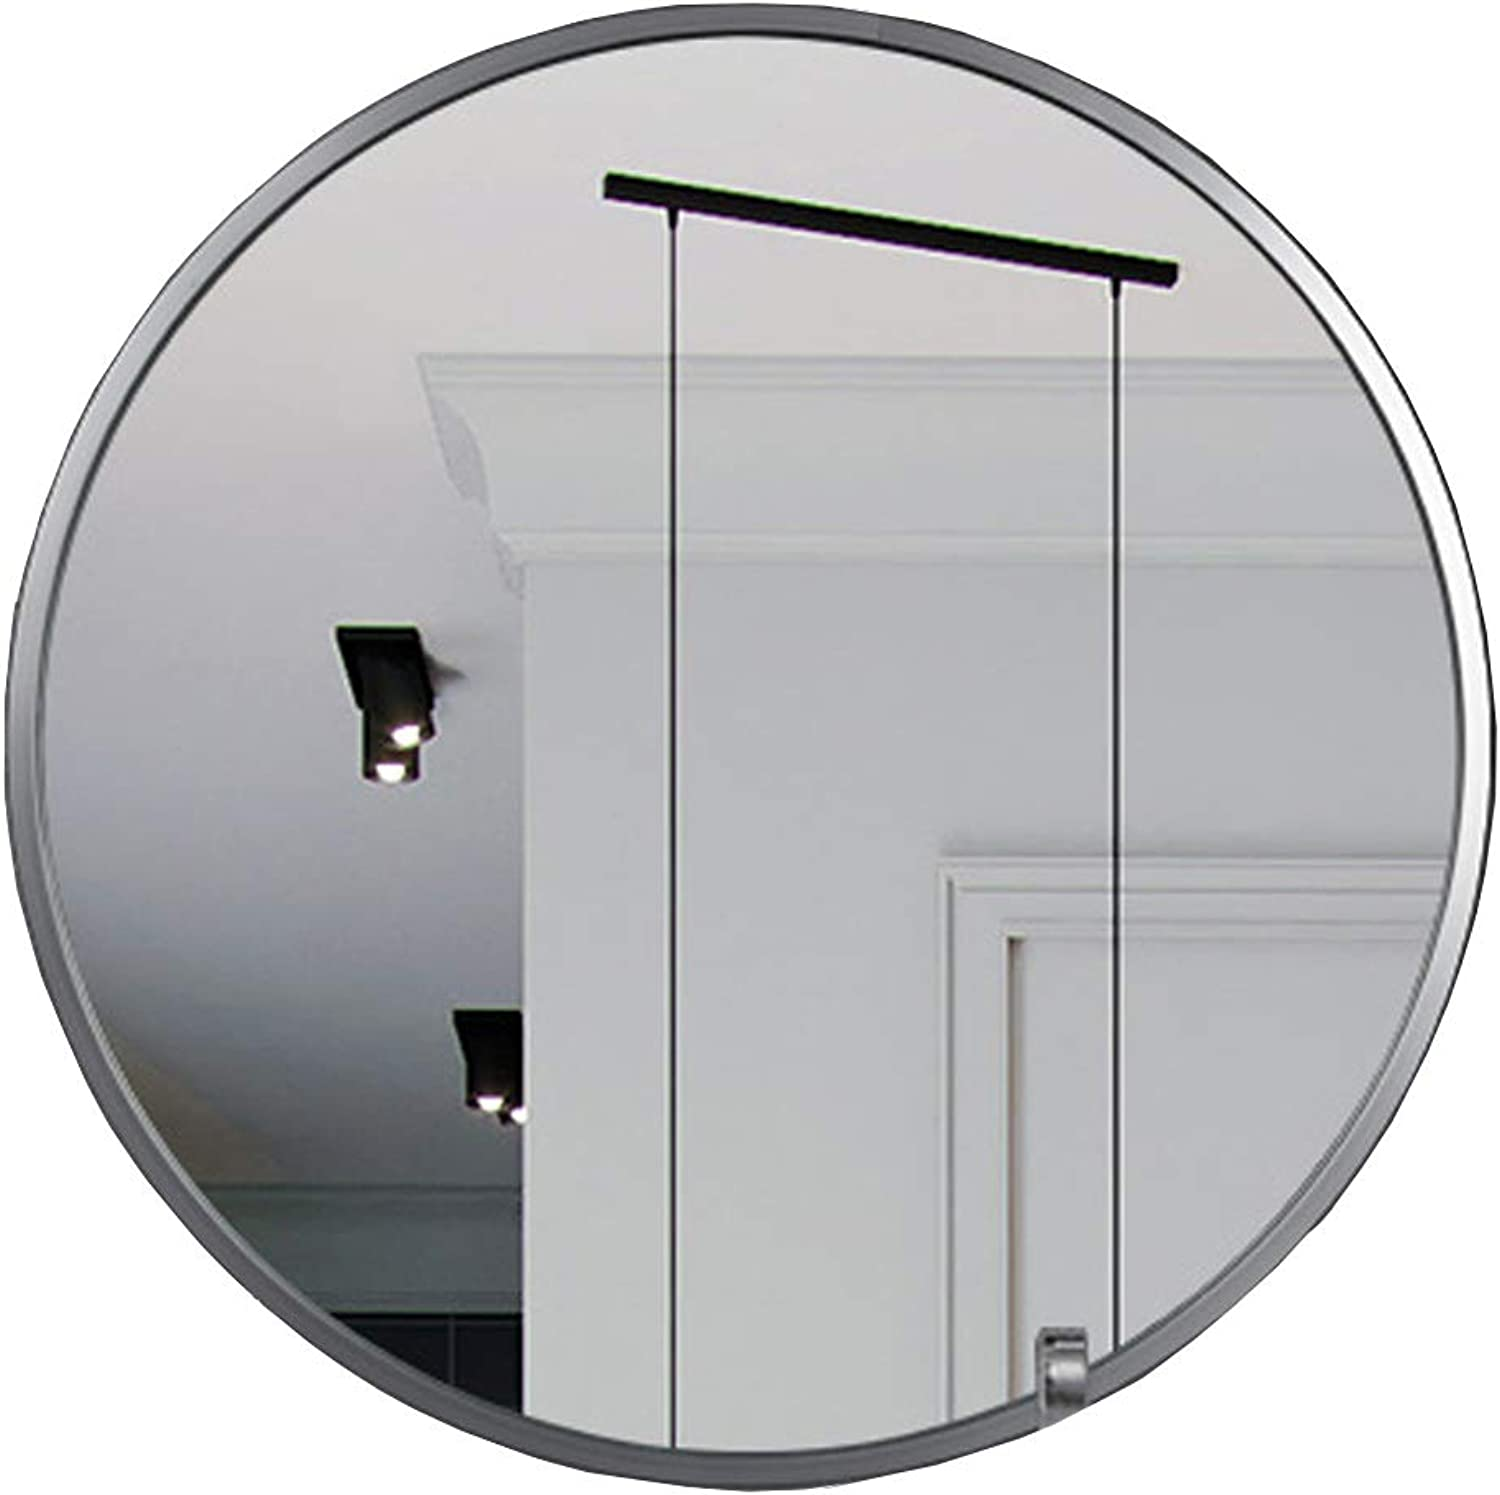 Decorative Mirror Bathroom Round Silver Metal Frame Wall Mirrors Vanity Shave Shower Makeup Mirror for Entry Dining Room Living Room (12Inch-32Inch)